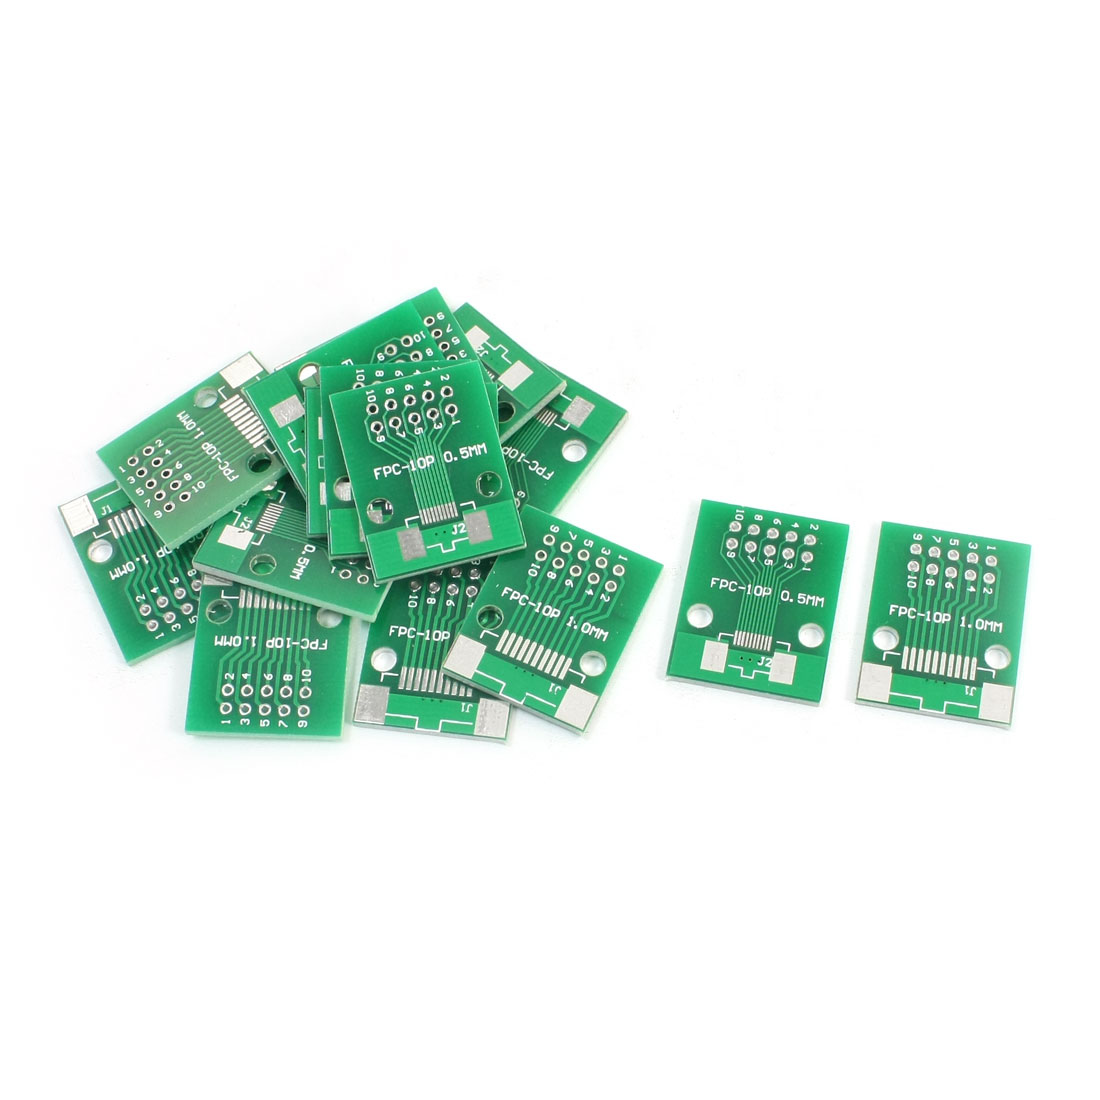 15 PCS SMD FPC-10P 0.5mm 1mm to DIP10 2.54mm Pitch Double Sides Adapter PCB Plate Converter Board